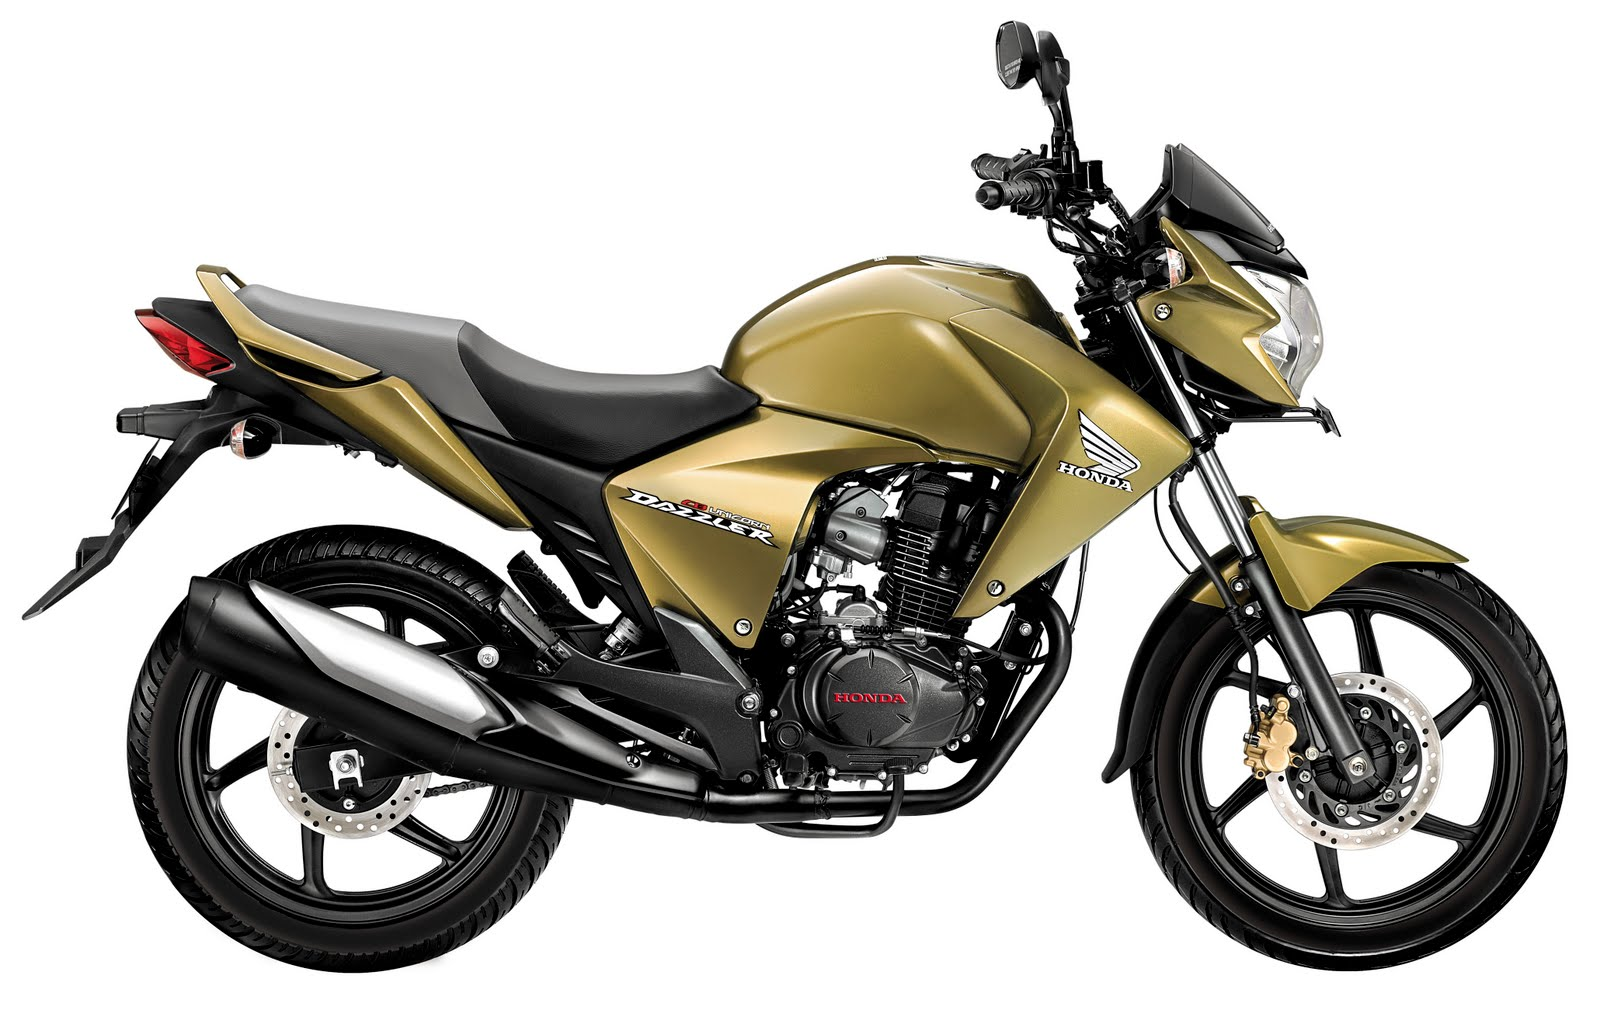 You Can See New Honda Unicorn CB Dazzlers Price Review And Specification Below Dazzler Is Hondas Third Consecutive Good Looker Motorcycle